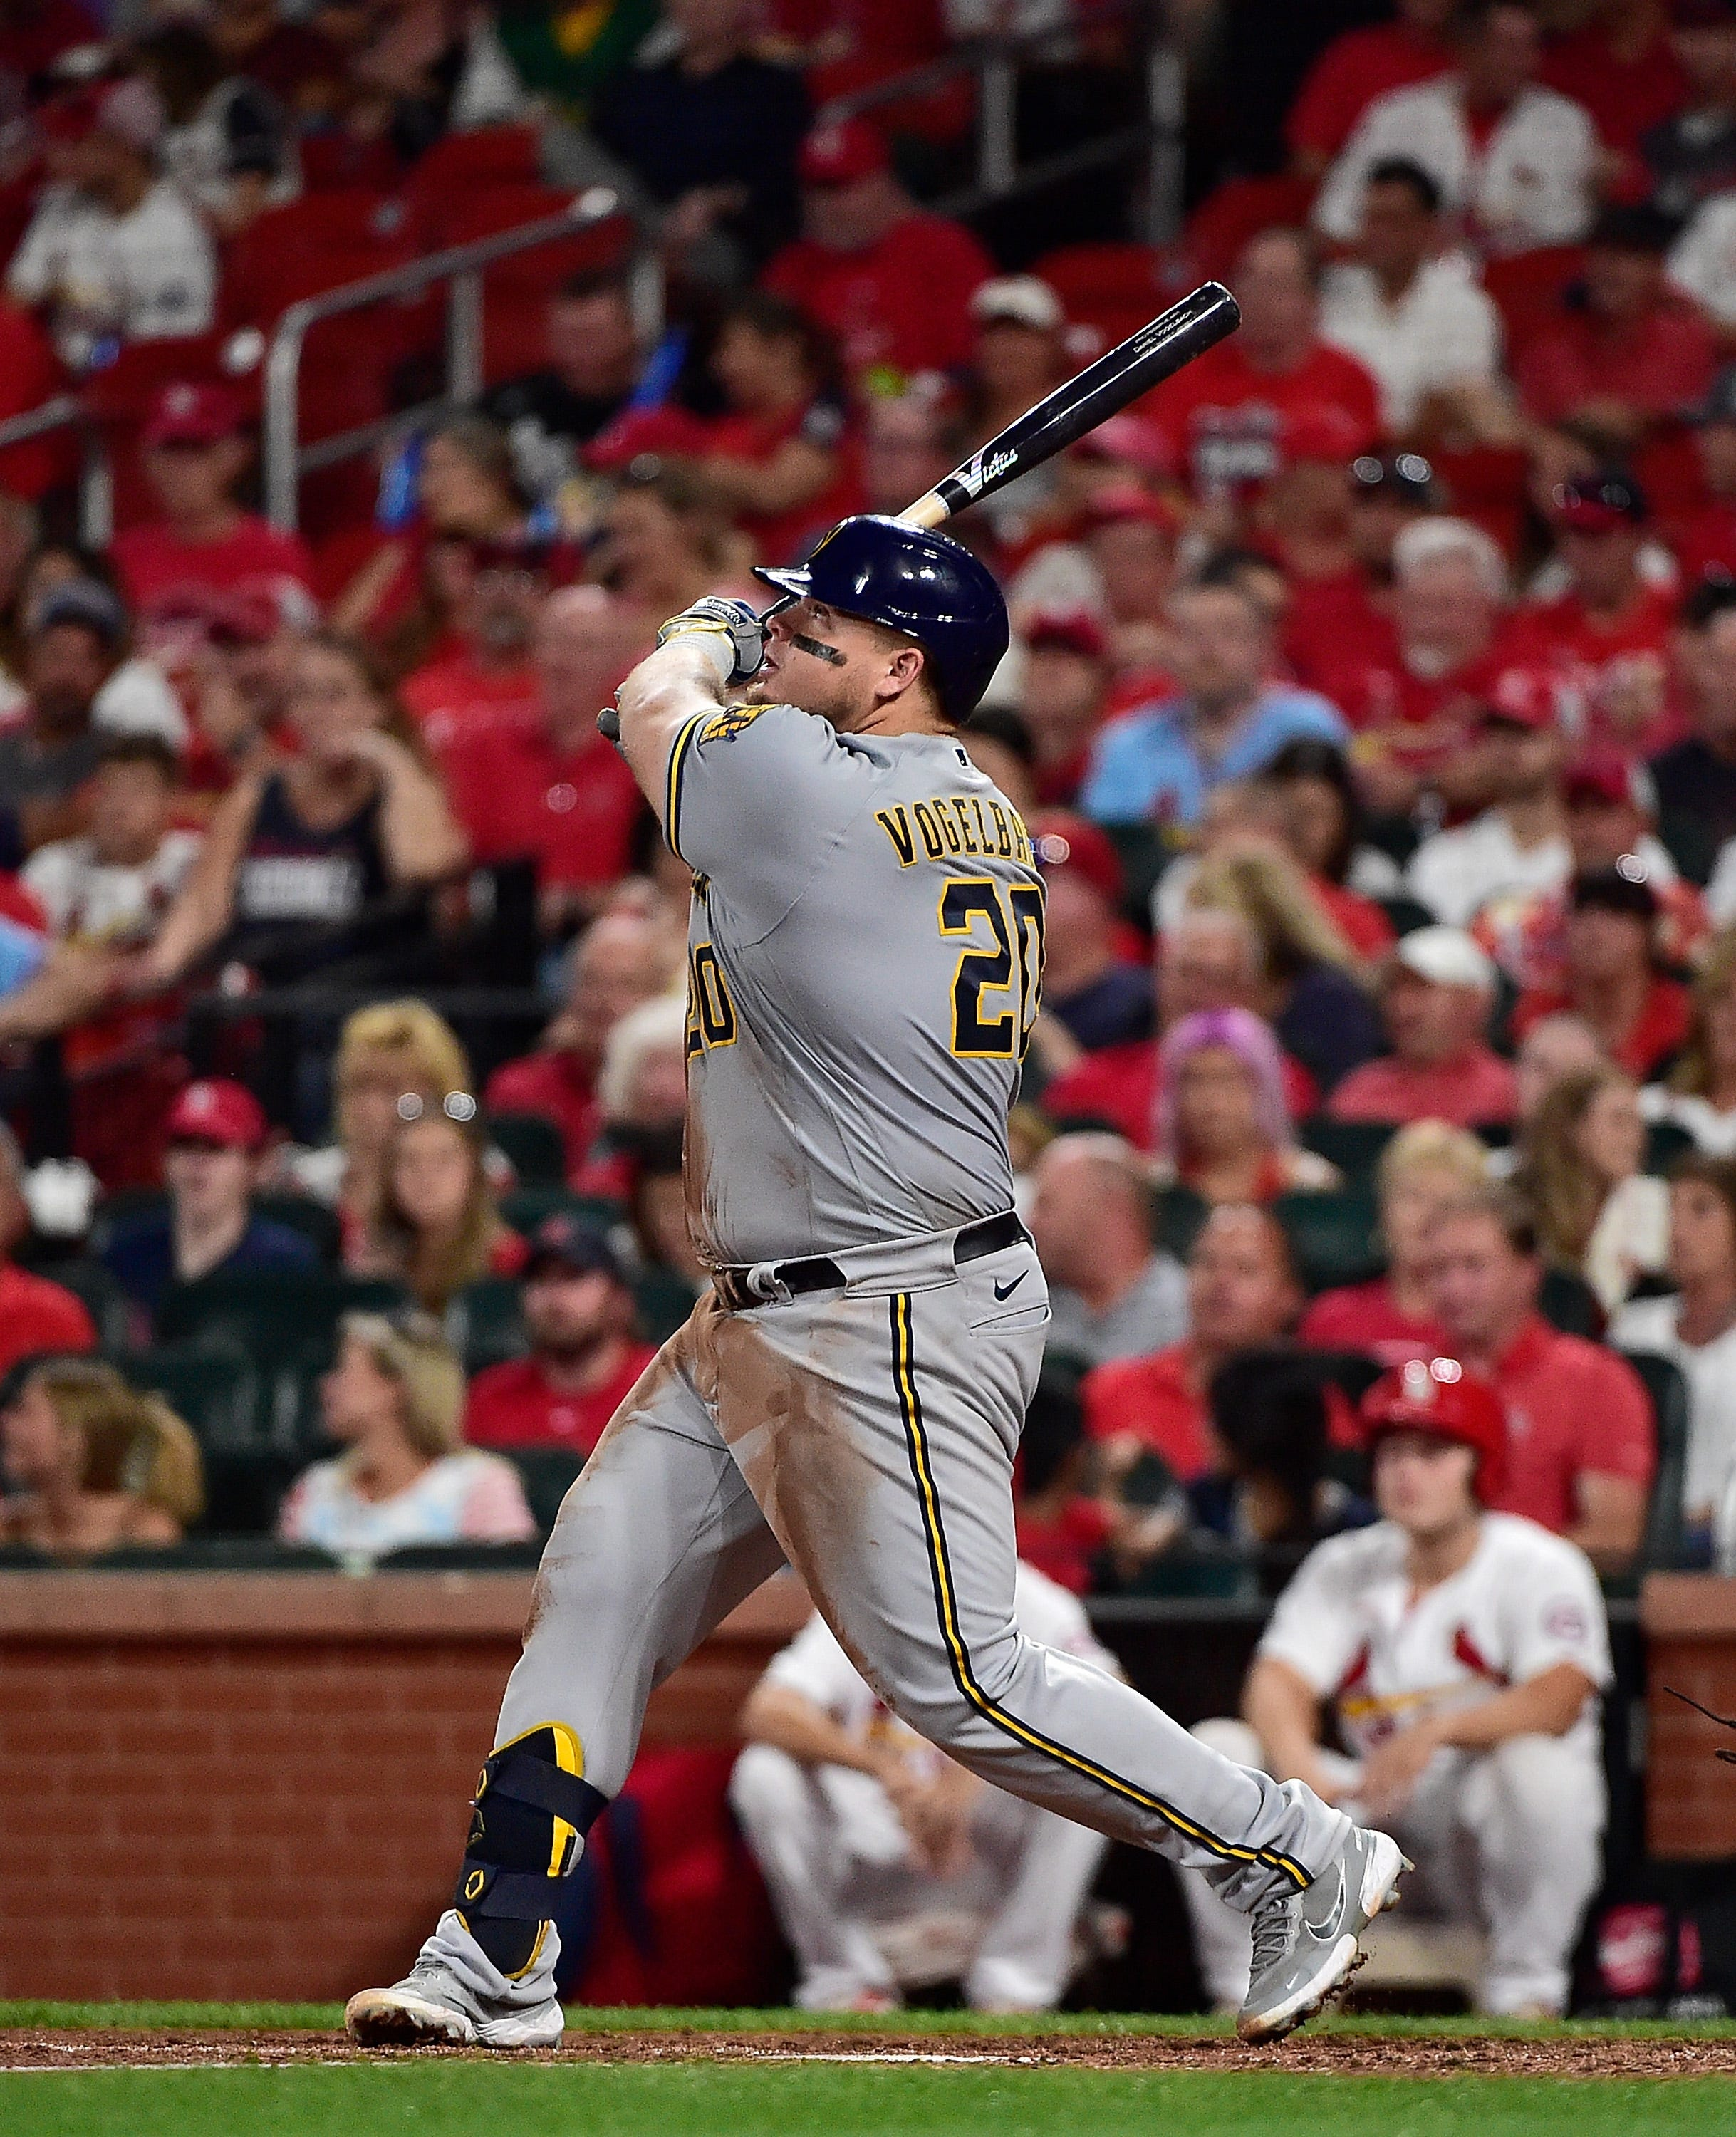 Milwaukee Brewers rally after bad news to win 50th road game, snap St. Louis Cardinals  winning streak